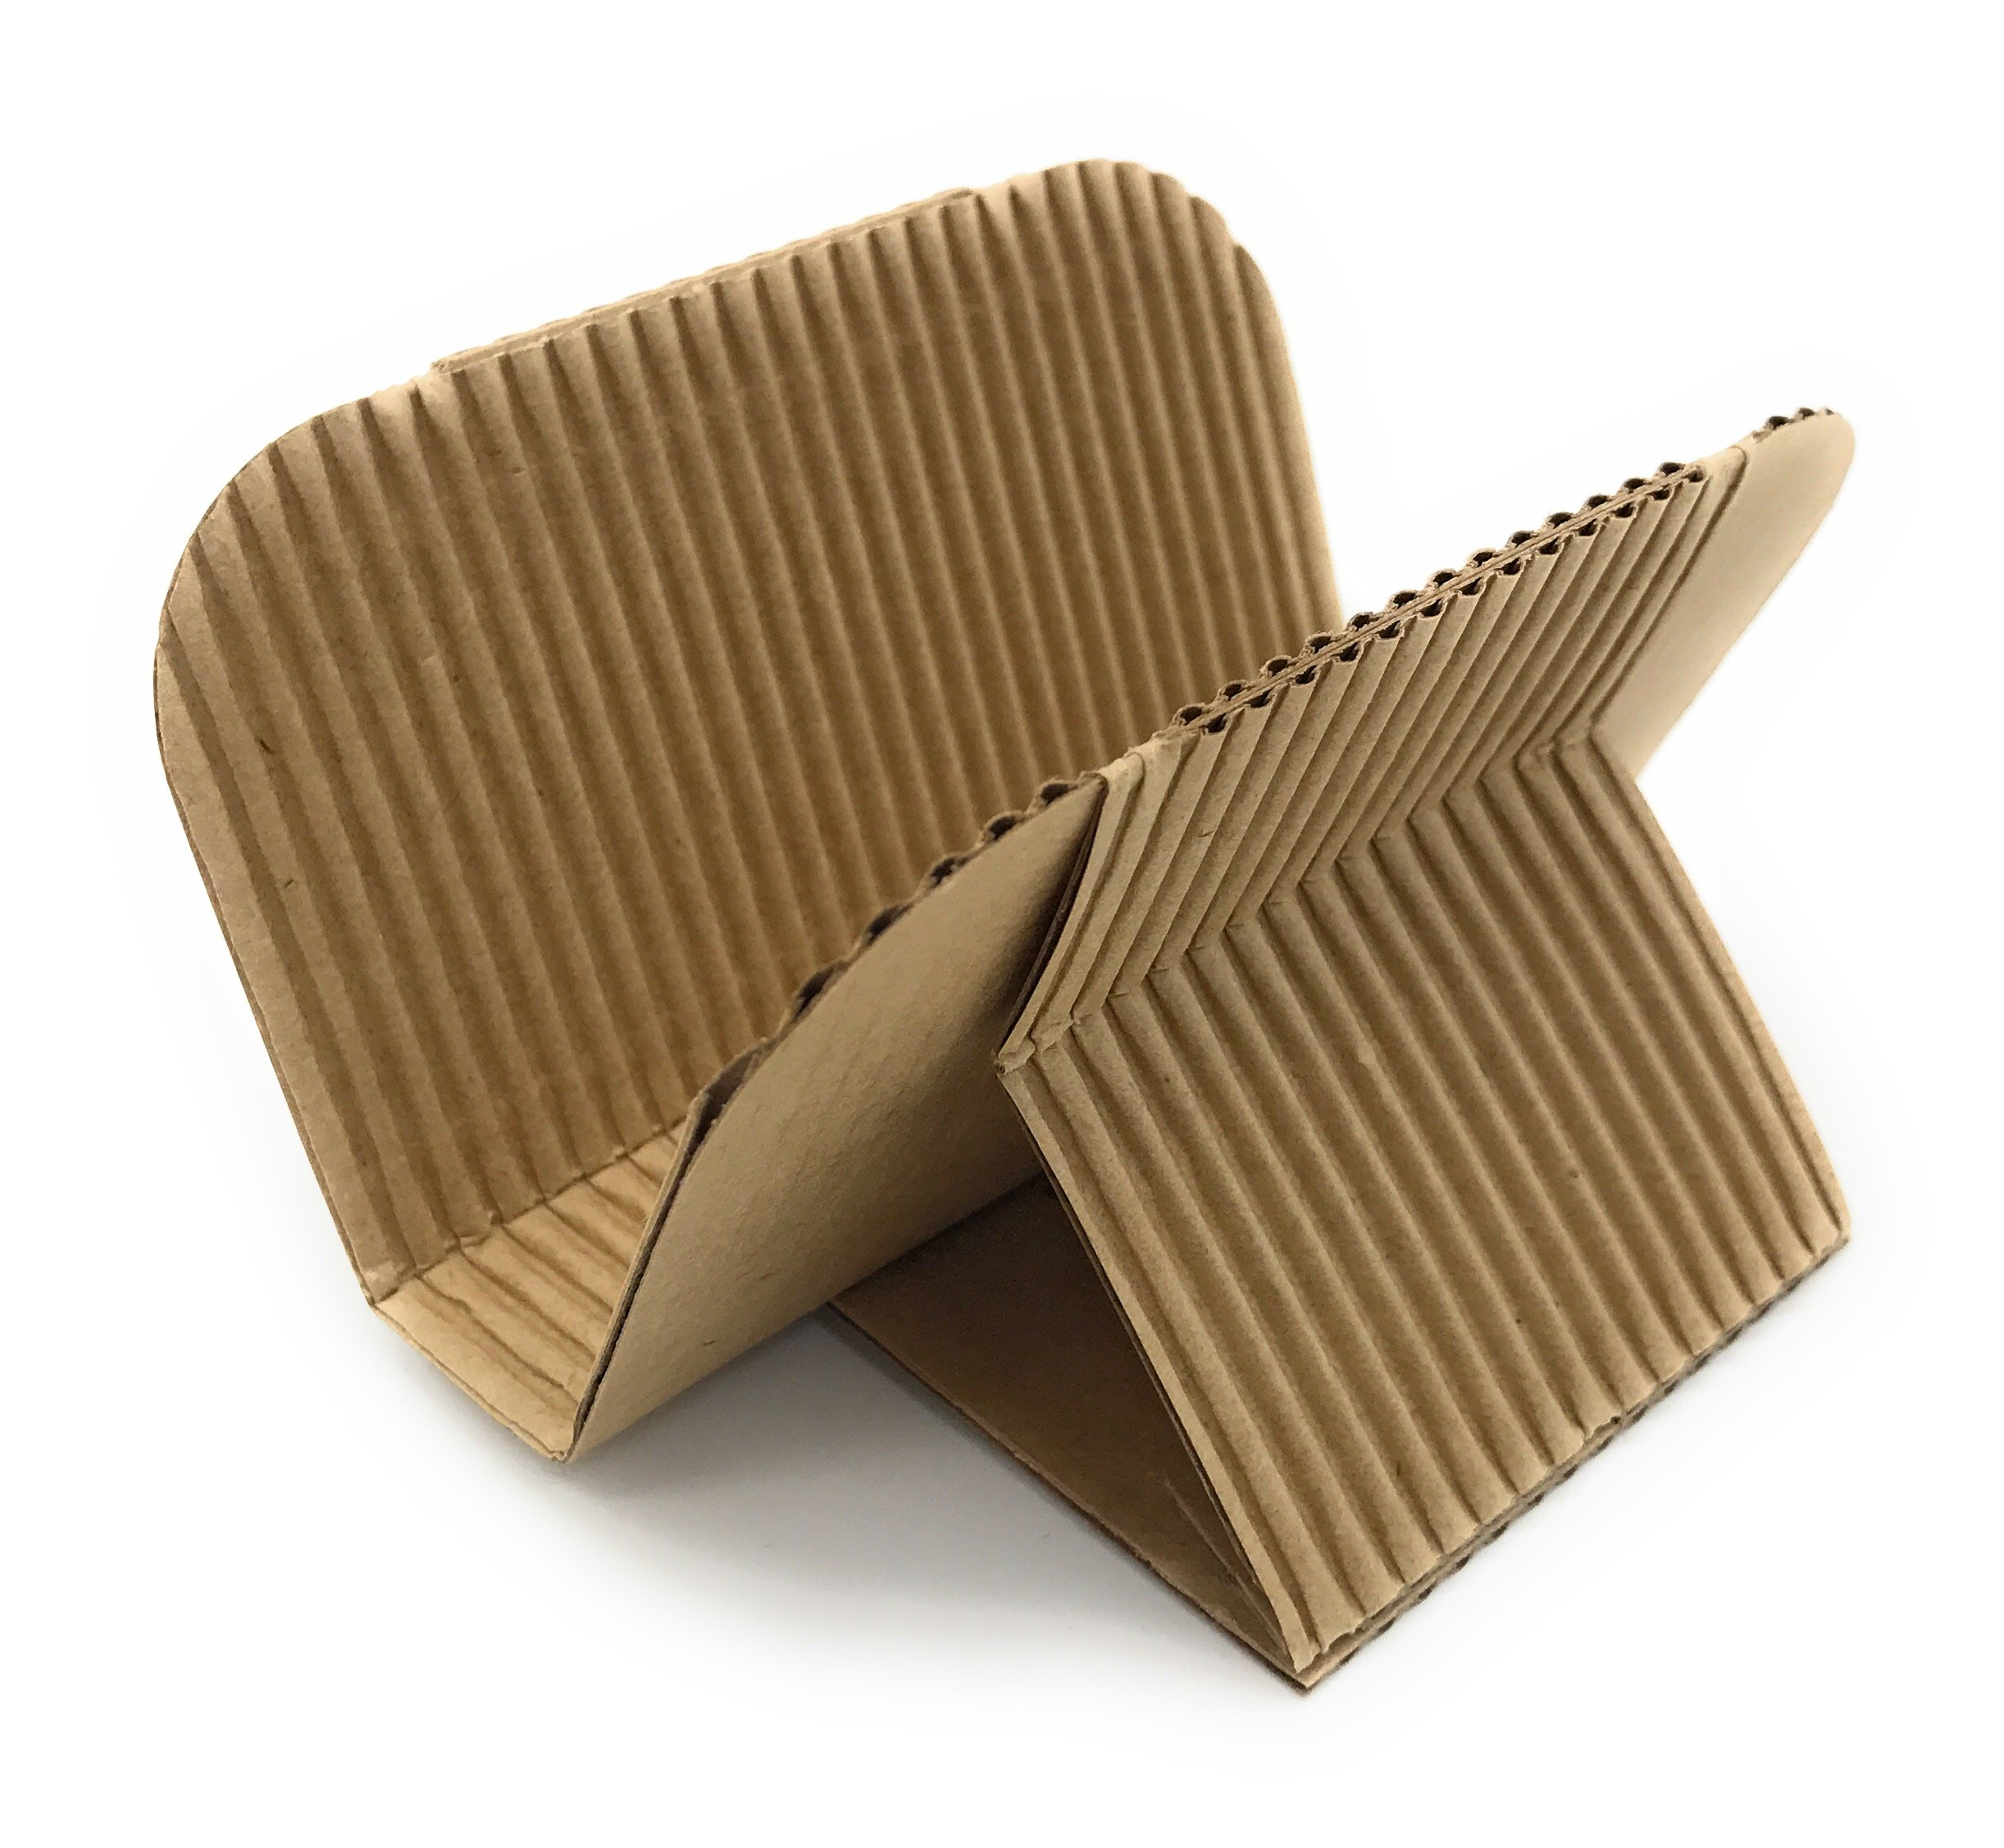 (200 pcs) Disposable Taco Holder Stand - Rack Tray Plates for Serving Hard or Soft Tacos Shells Shawarmas Hot Dogs Waffle Sandwiches Gyros Pita Wraps Party Home Commercial Food Service Packaging